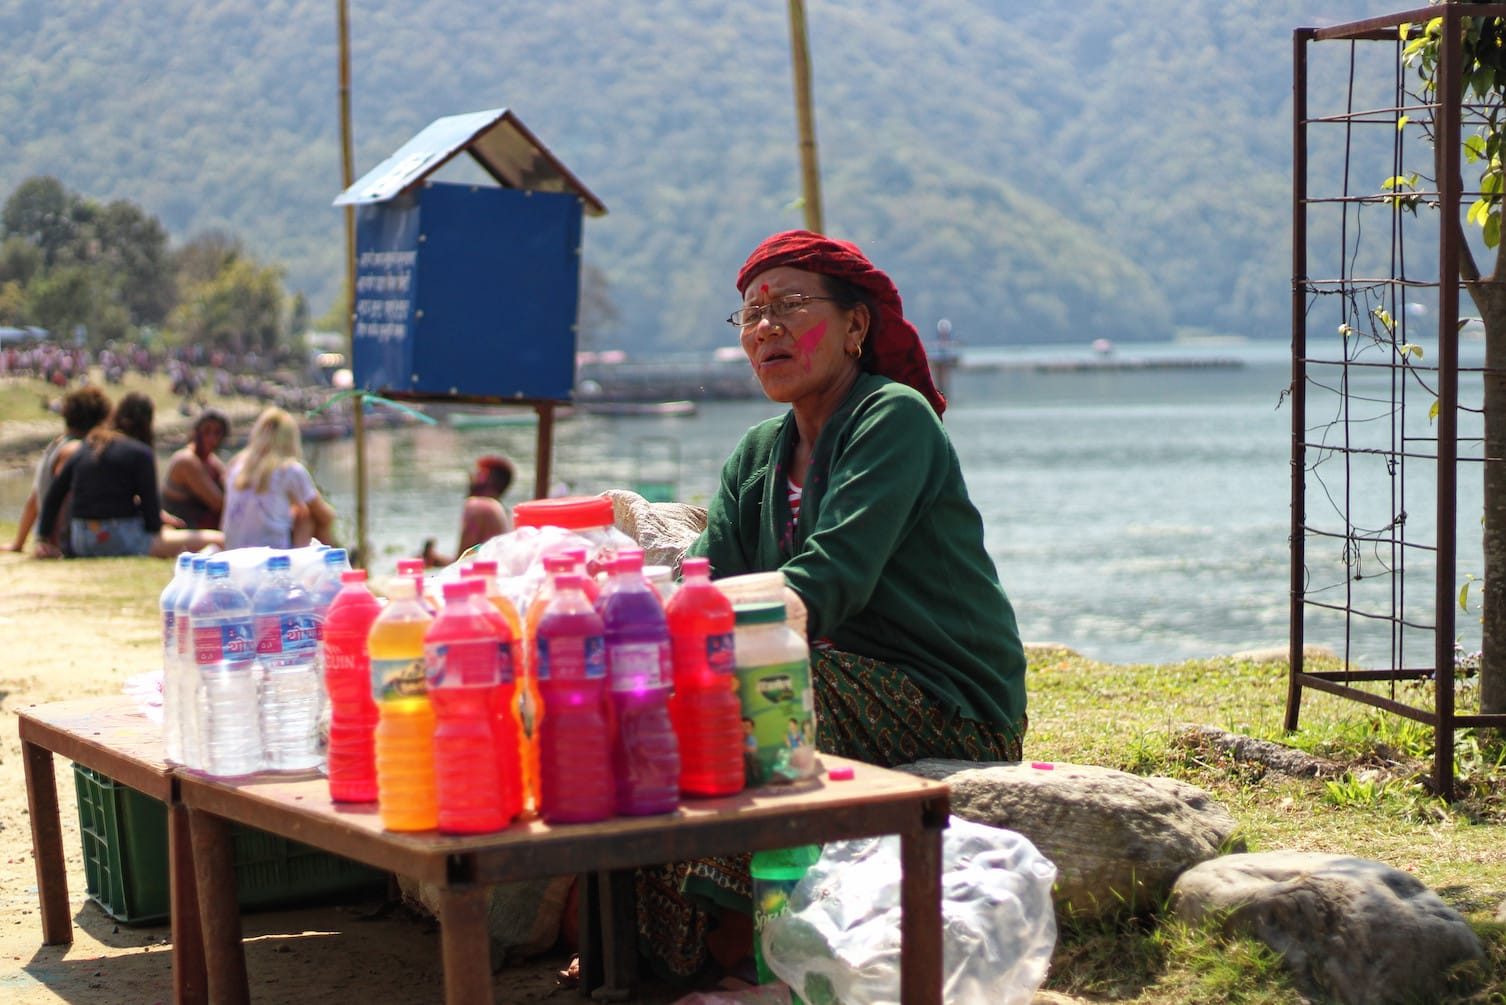 A Woman Selling Coloured Water